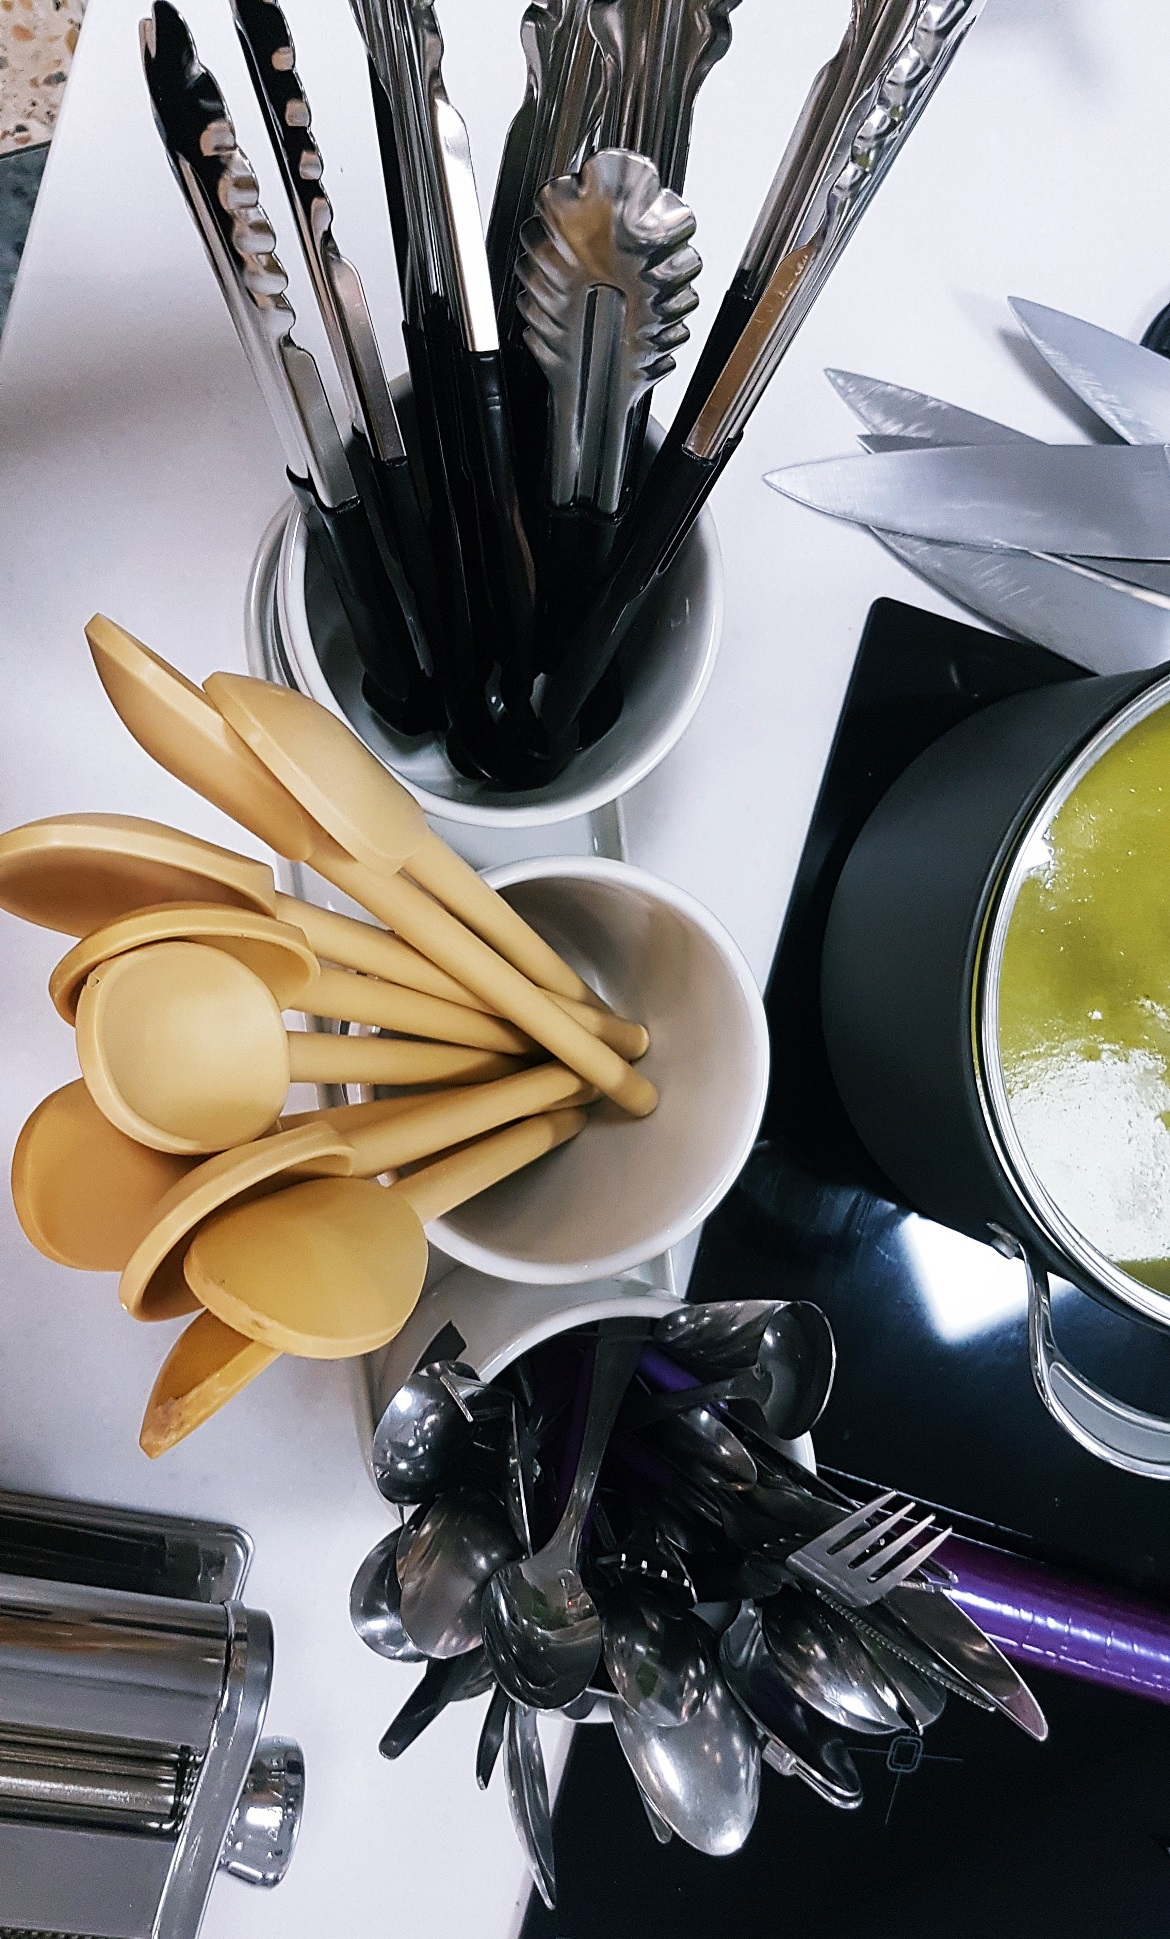 Cooking implements - Leeds Cookery School review by BeckyBecky Blogs